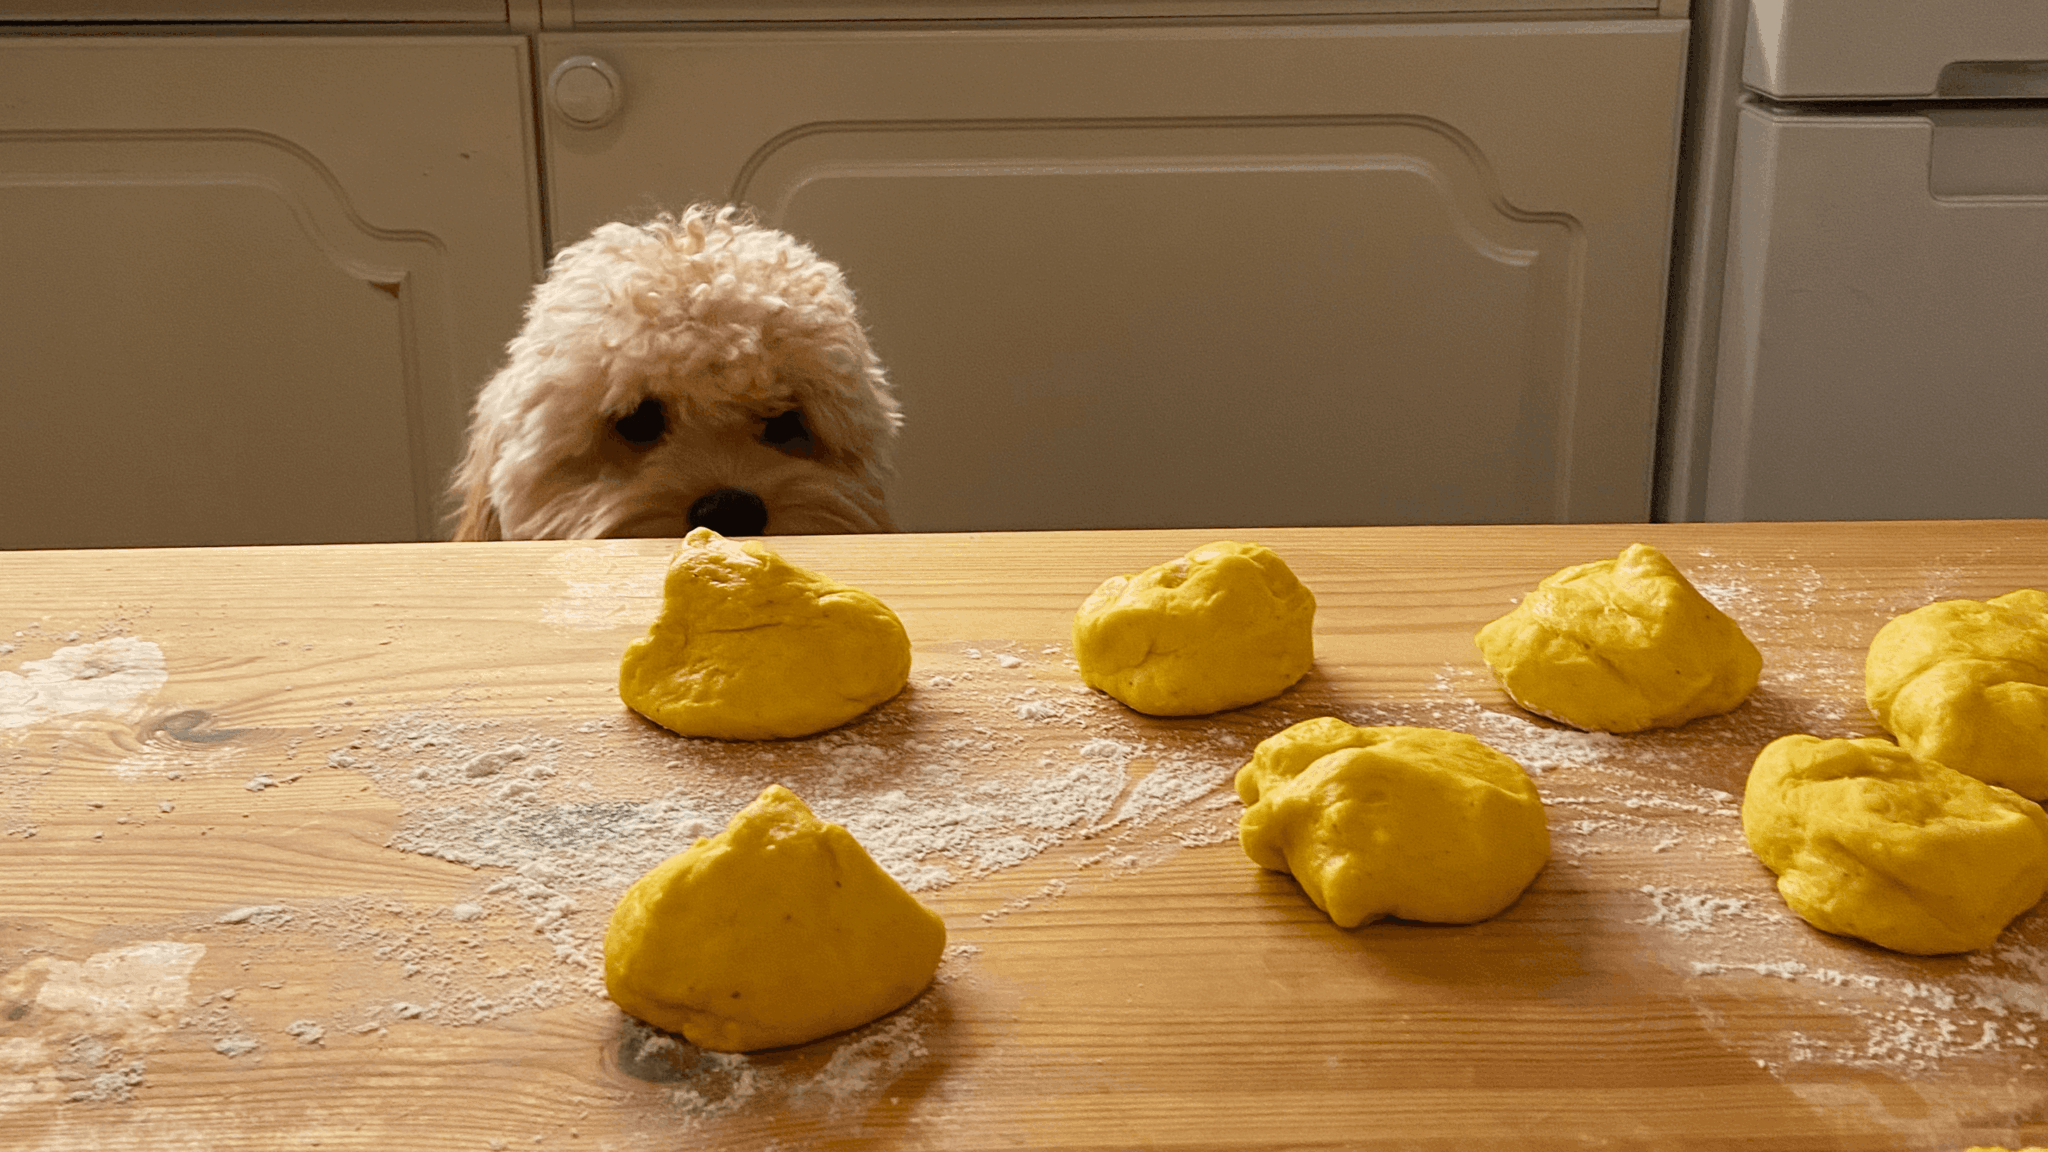 A white poodle looking at balls of dough on a counter top